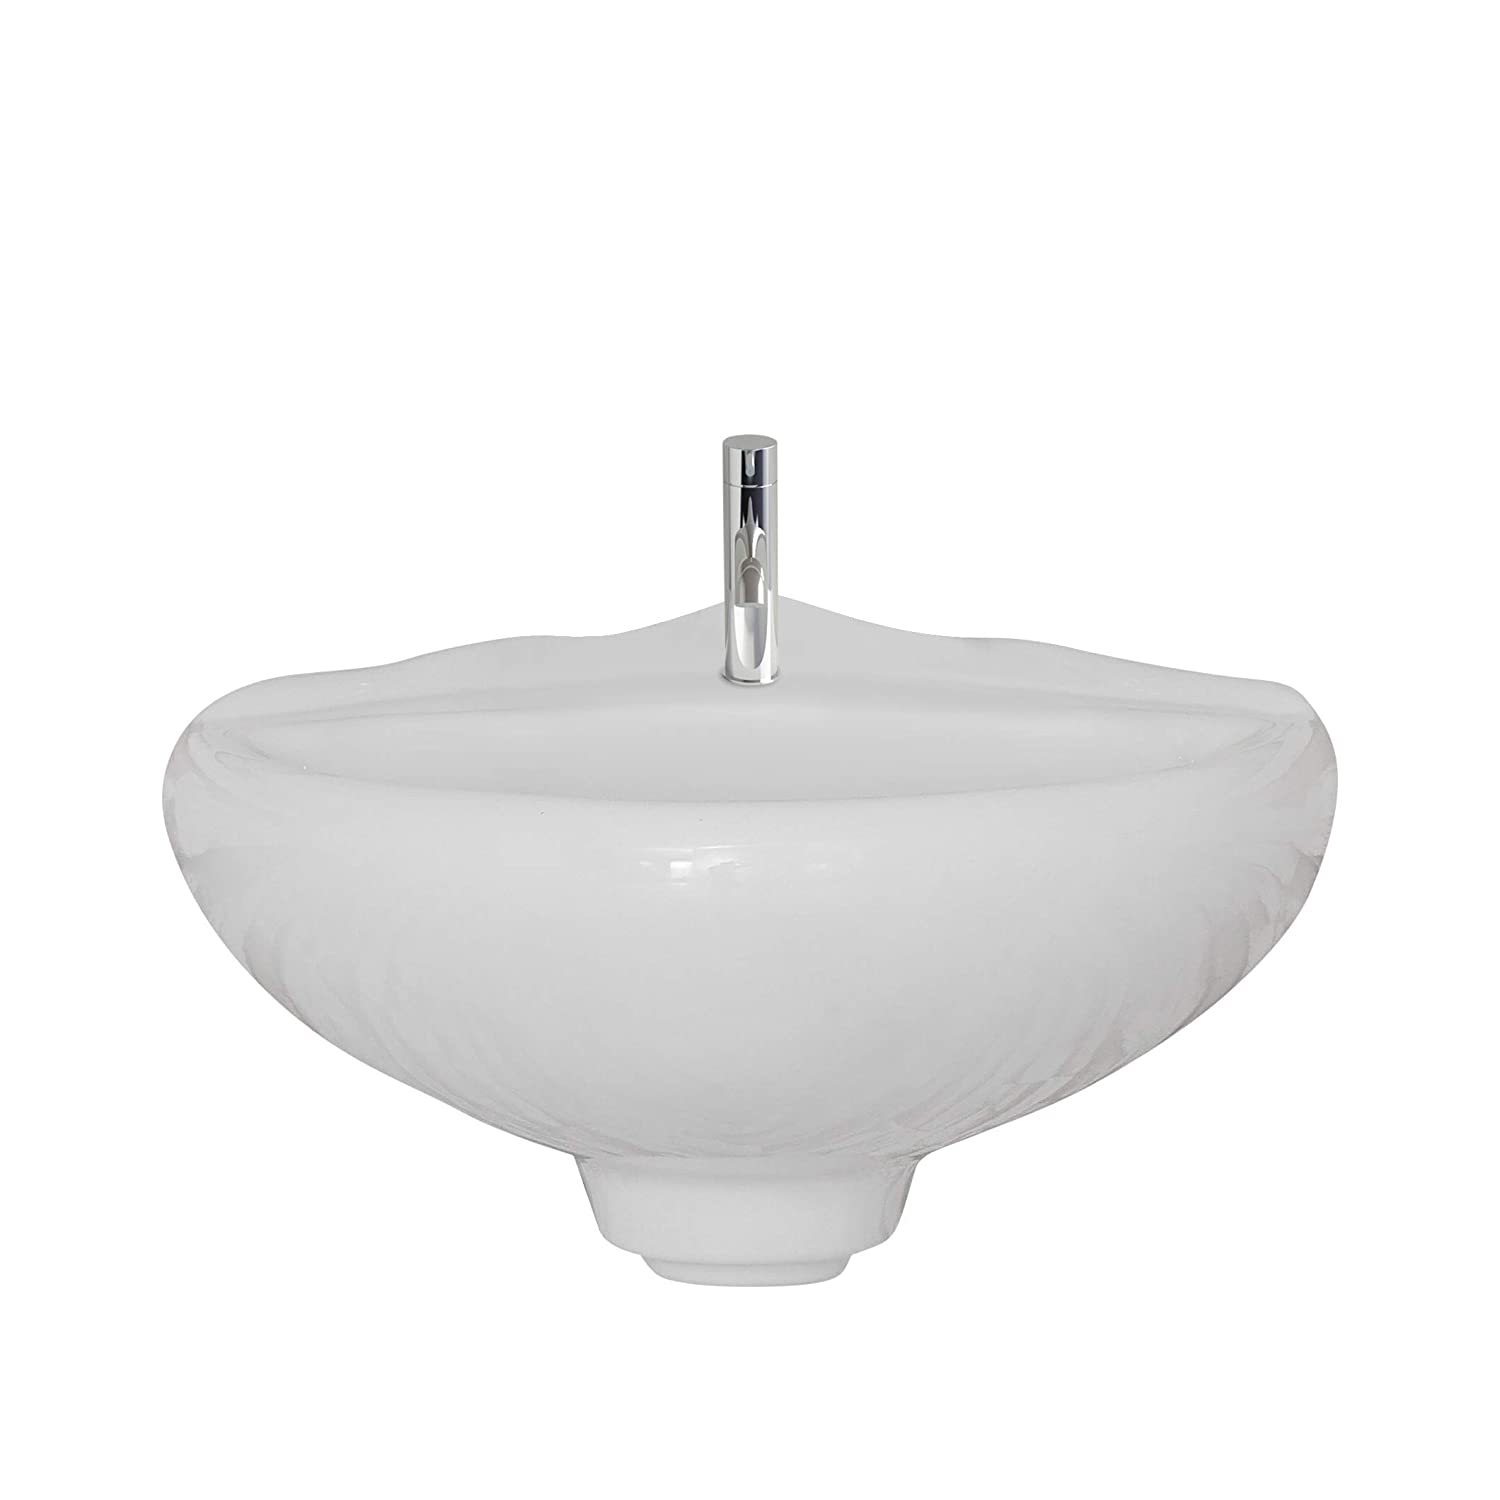 Ceramic Corner Wall Mount Bathroom 15.25 Sink Single Hole